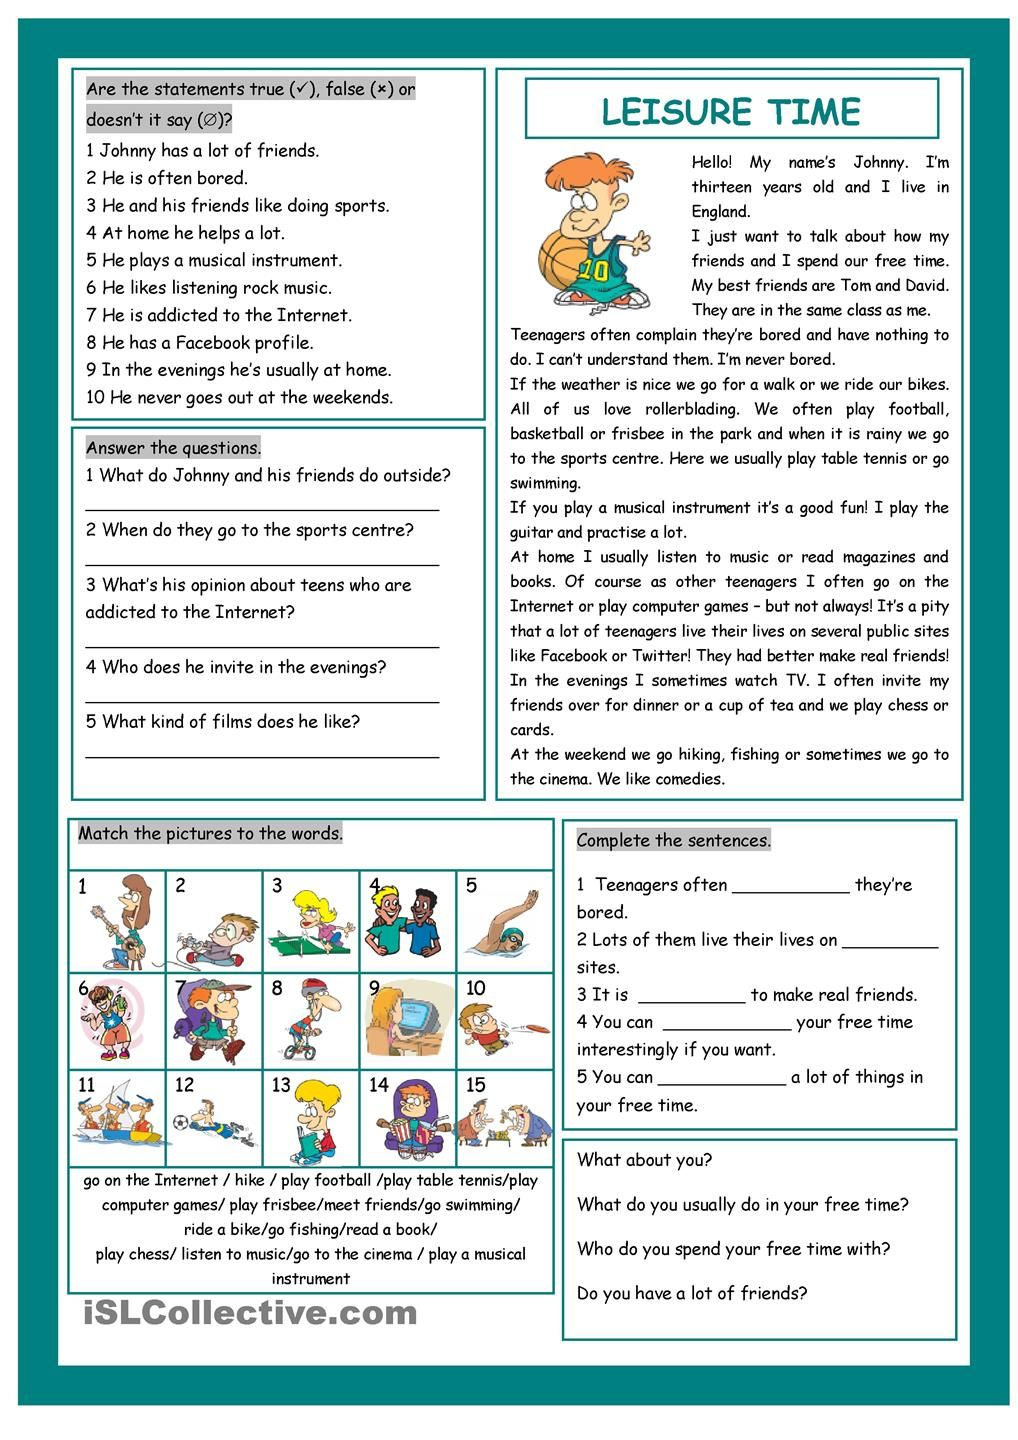 Workbooks year 8 english worksheets comprehension : Leisure Time! | Esl | Pinterest | English, Reading comprehension ...